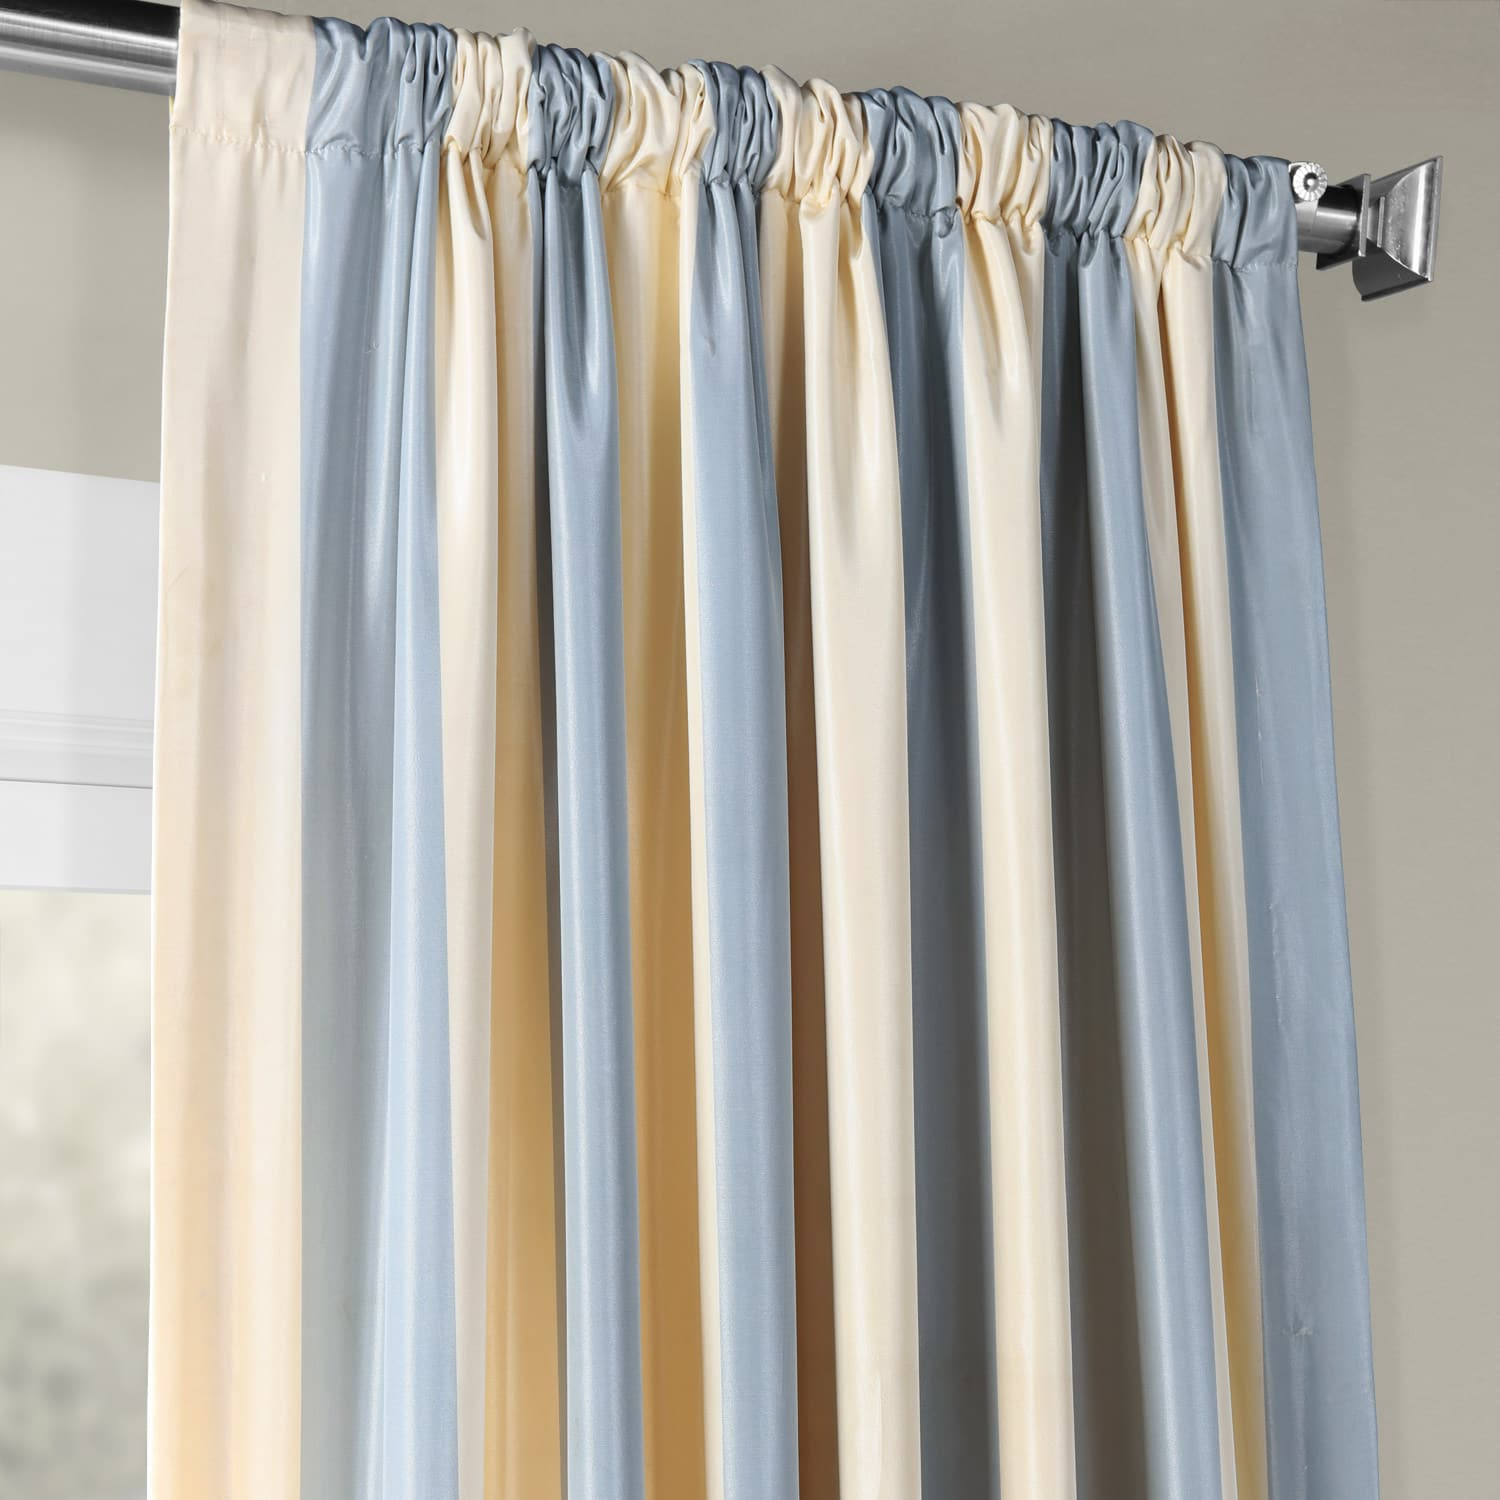 inches curtains zq blackout curtain drapes striped brown inch gallant panel grommet bl with window posh panels black exciting nursery patterned bamboo pier rod long